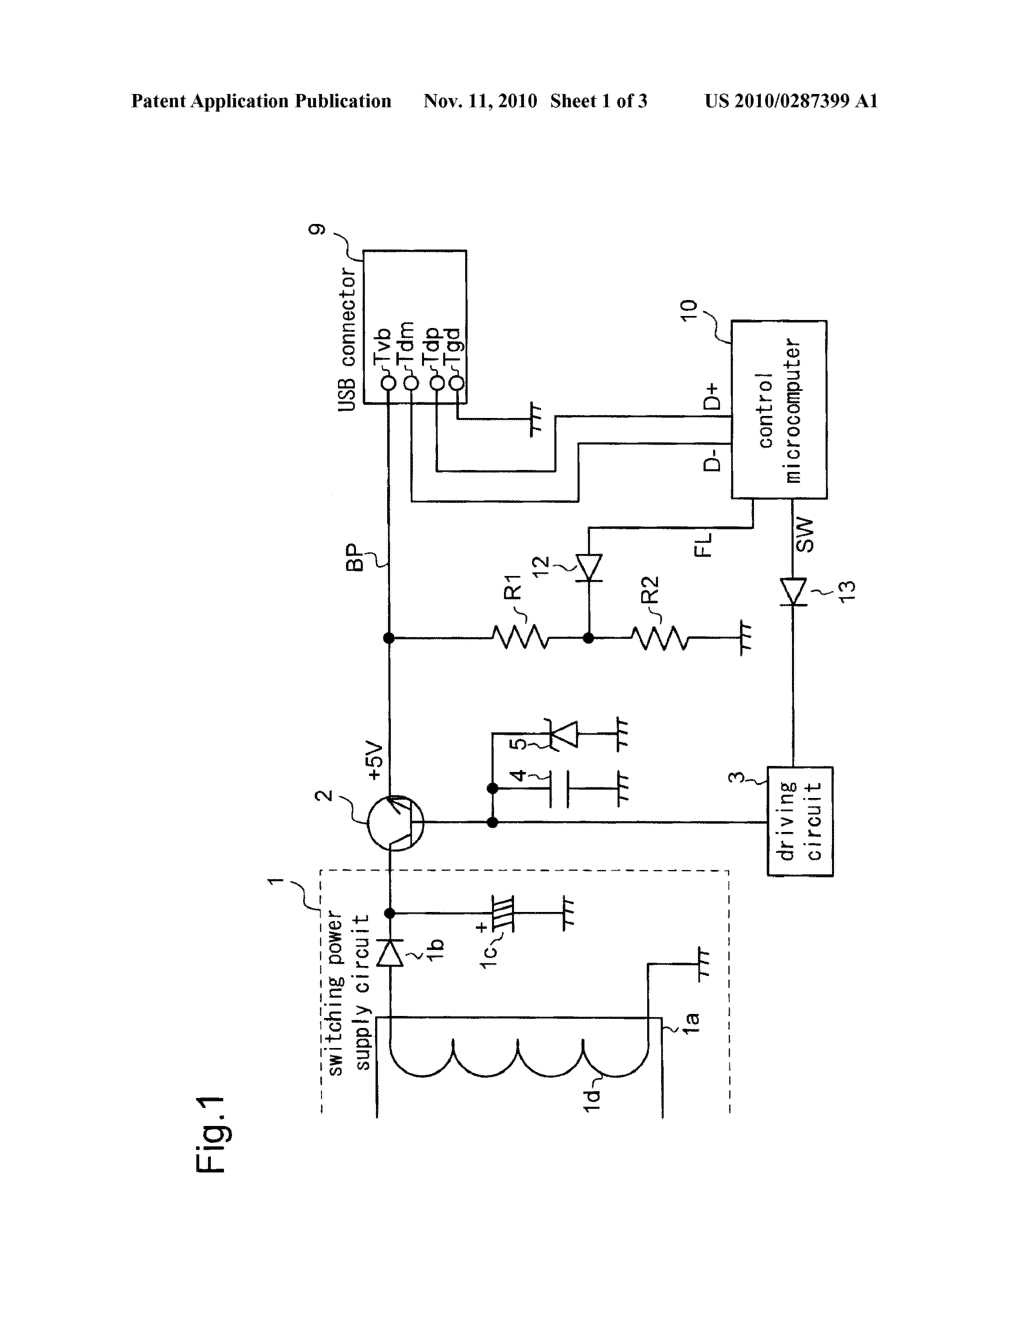 usb power supply circuit diagram schematic and image 02 rh patentsencyclopedia com 5v usb power supply circuit 5v usb power supply circuit